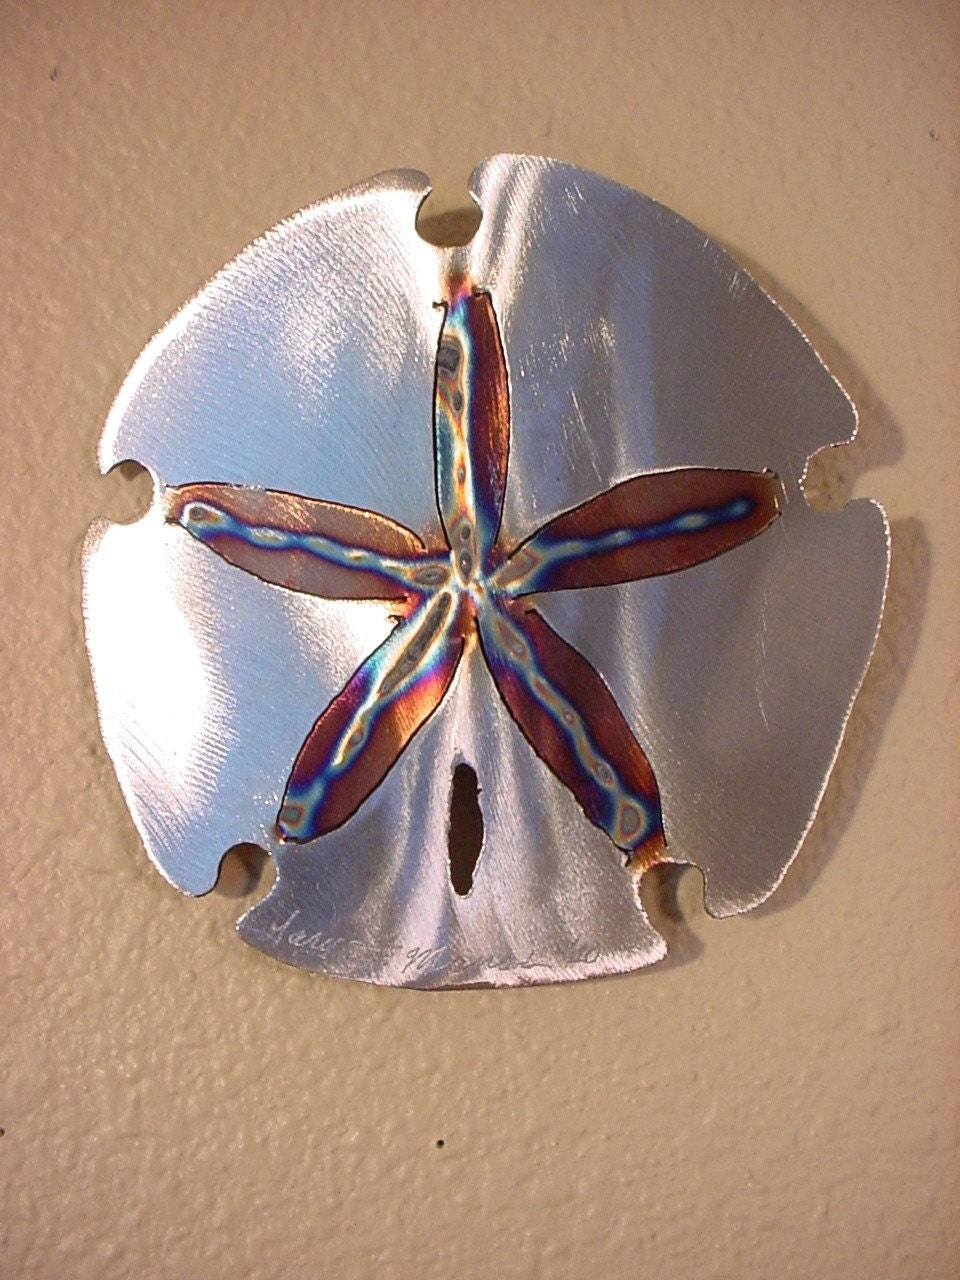 Sand Dollar Sanddollar Steel Wall Art Metal Ocean Beach House Coastal Cottage Home Decor Beach Combing